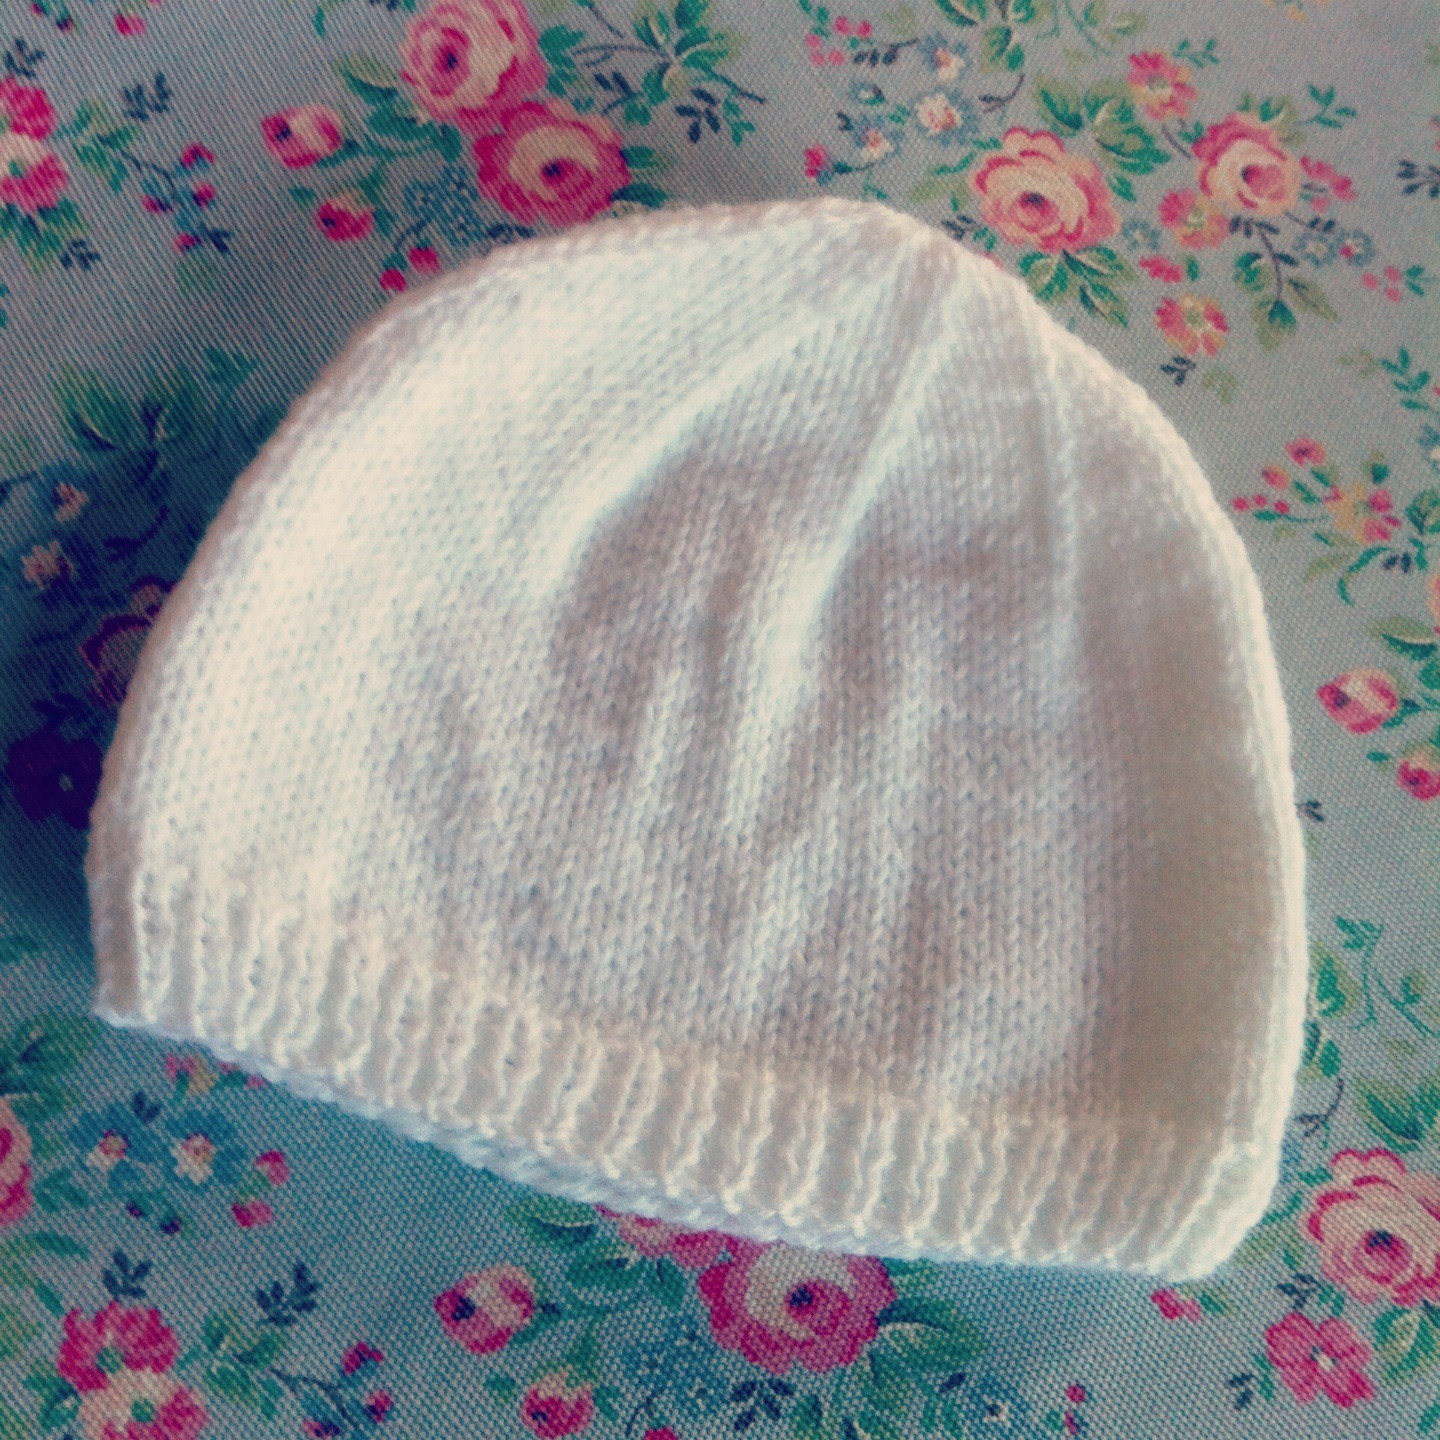 Easy Baby Knitting Patterns Unique Easy Knitting Patterns for Baby Hats Beginners Of Innovative 50 Photos Easy Baby Knitting Patterns